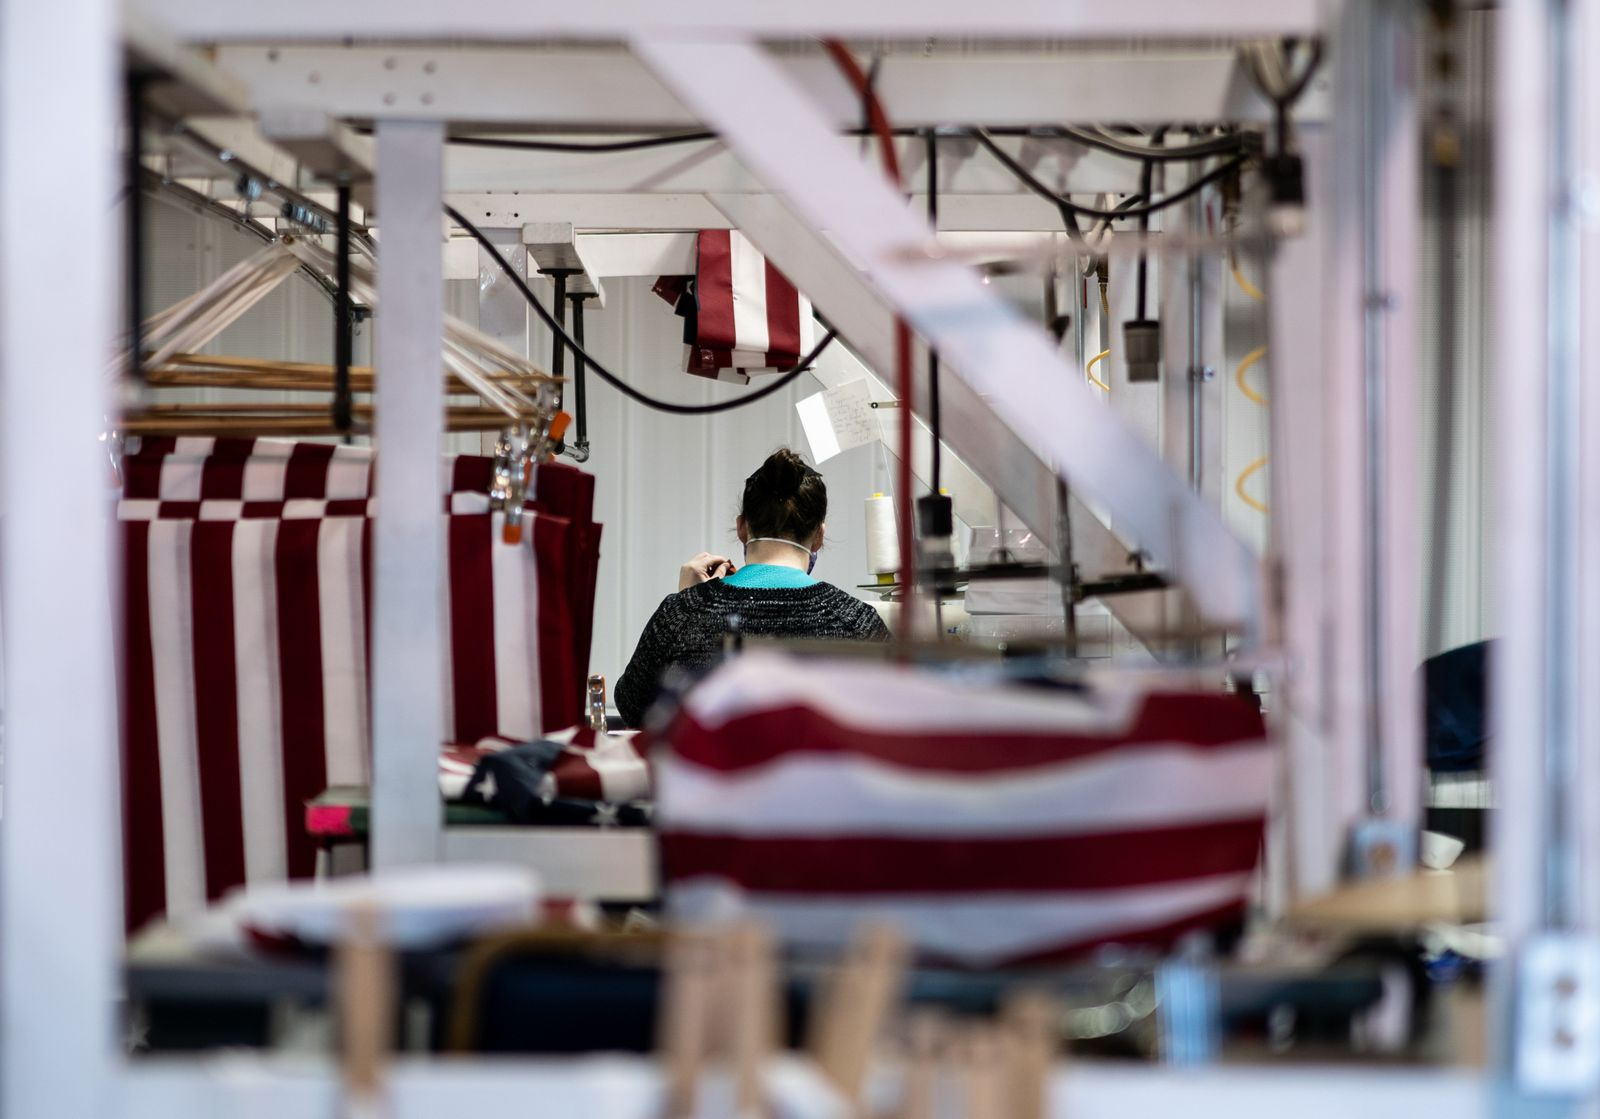 An Amish worker sews fluid-resistant gowns at Stitches USA in Walnut Creek, Ohio, on April 3, 2020. (Erin Schaff/The New York Times)